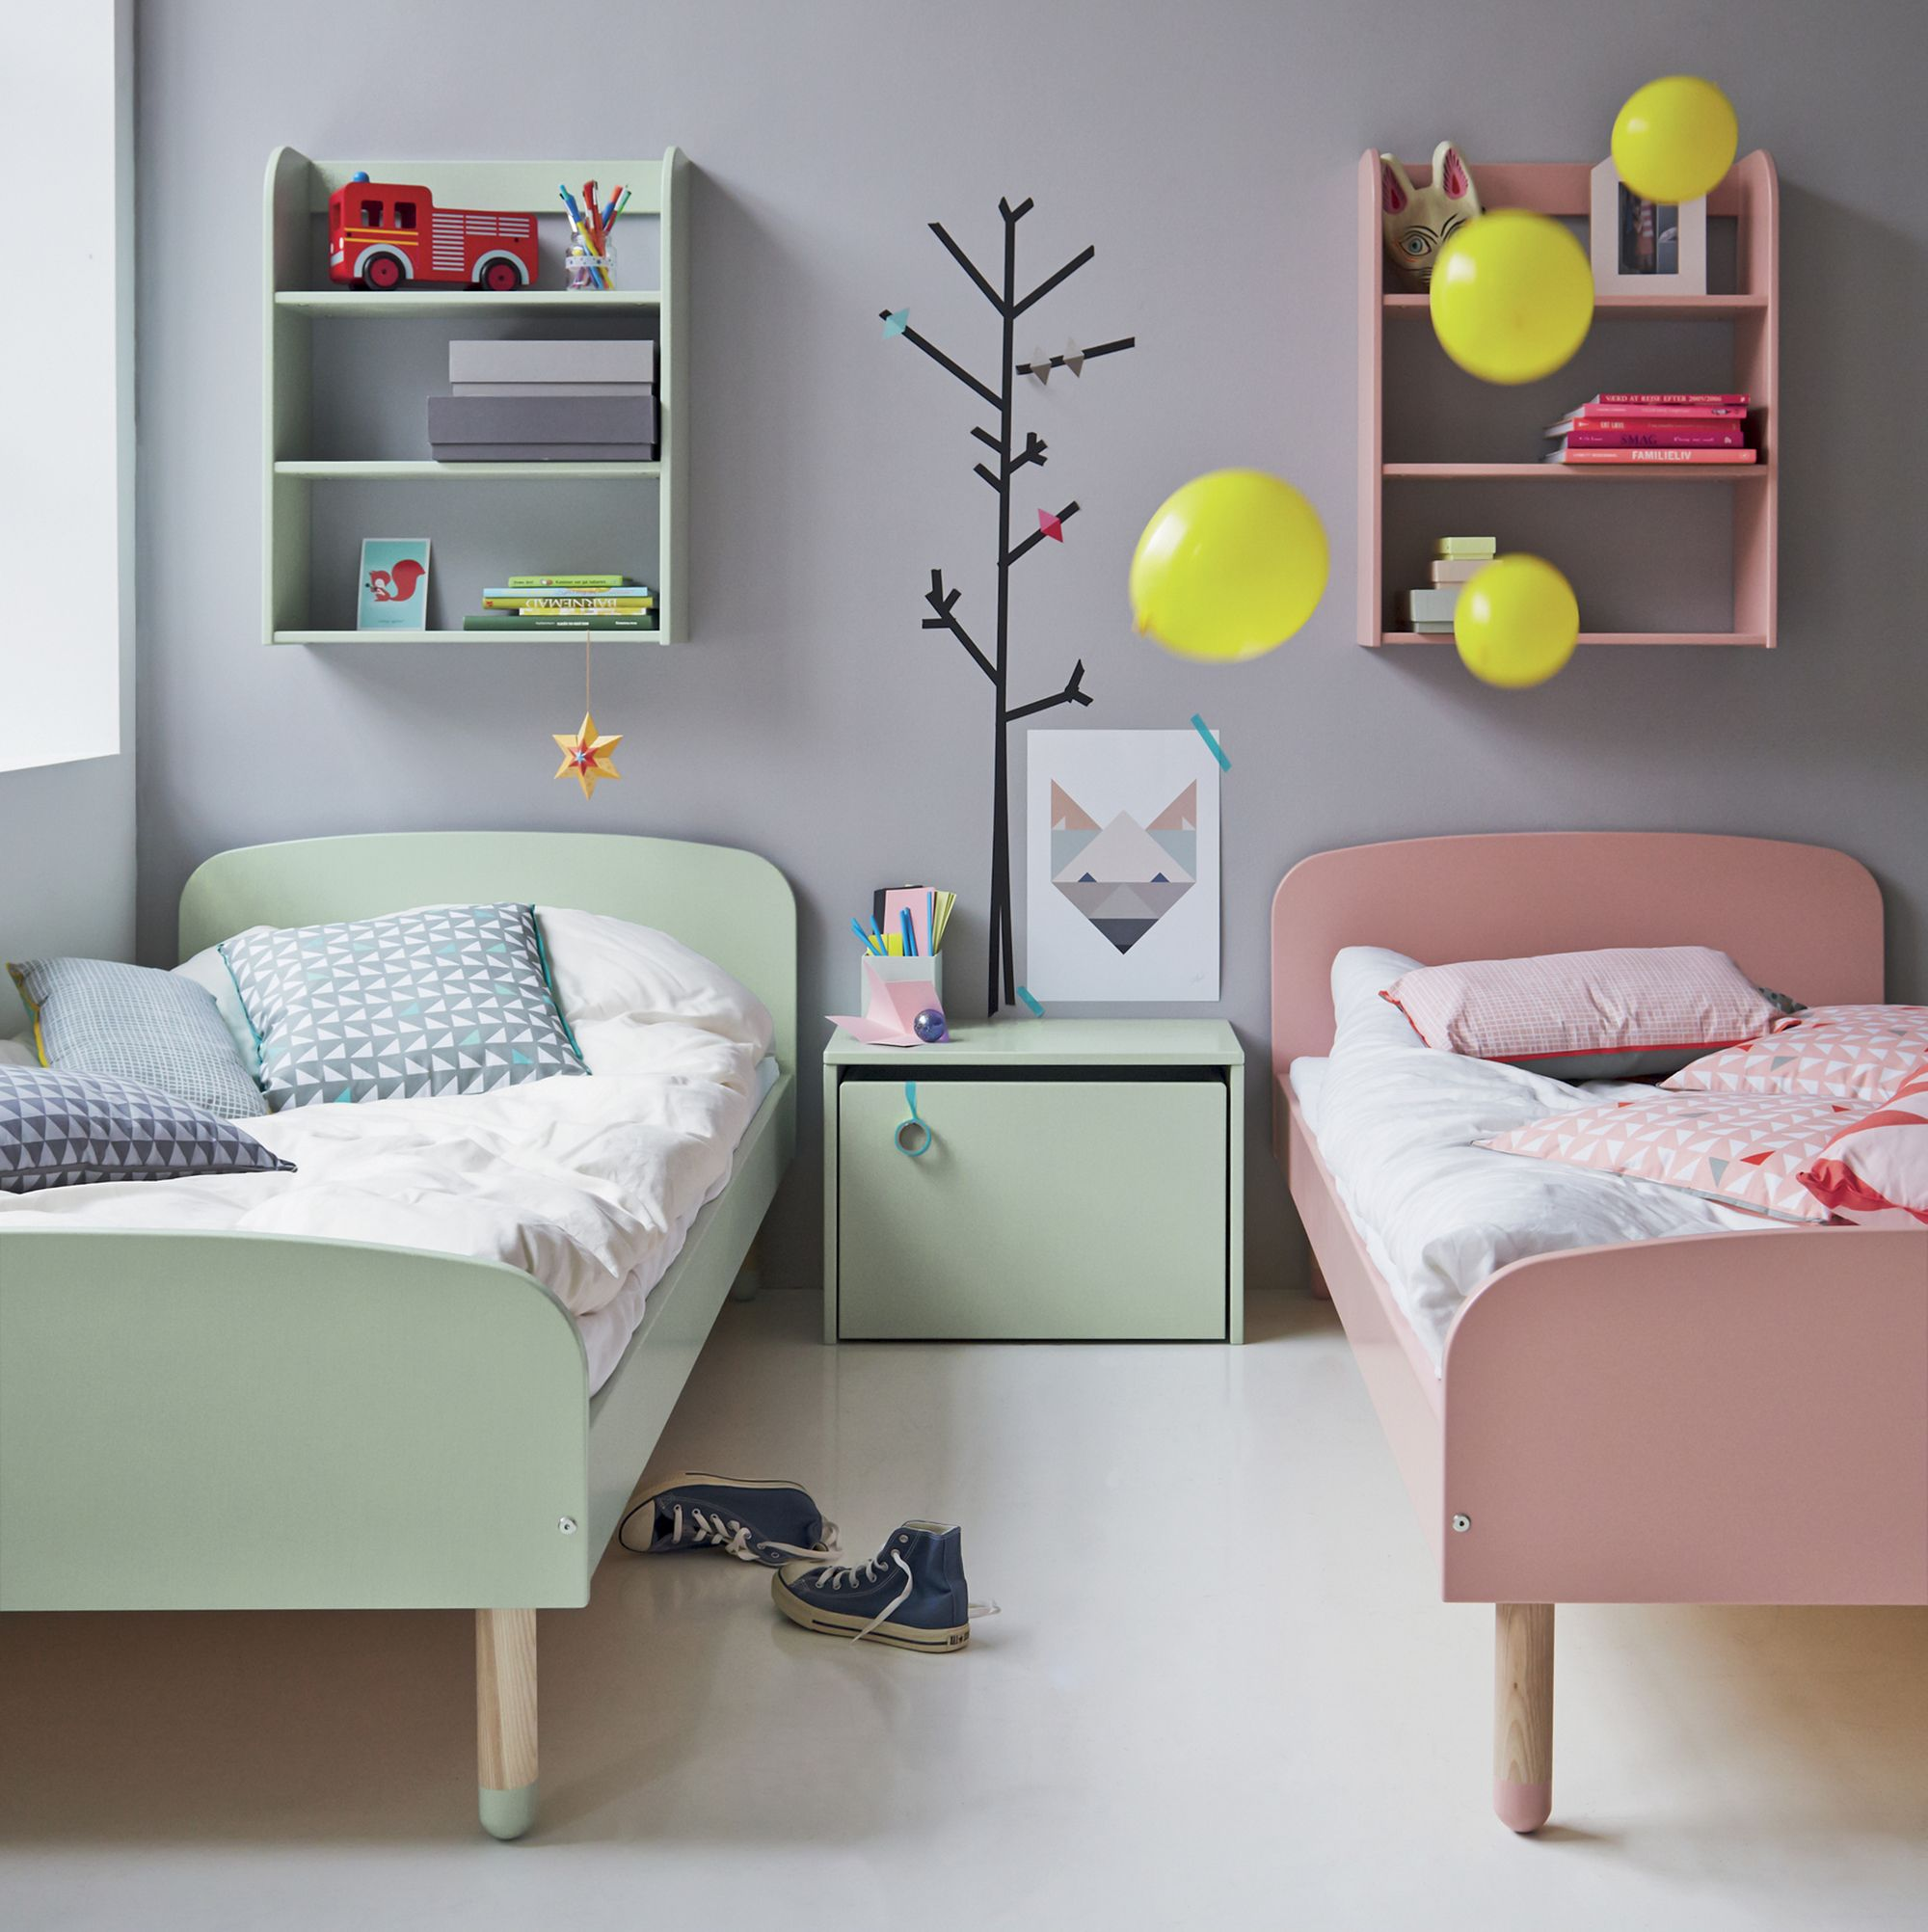 2 Kids Bedroom Ideas King Bedroom Sets Under 1000 Bedroom Ideas Red And Grey 2 Bedroom Apartment Plan Layout: Flexa Play Kids Single Bed In Mint Green